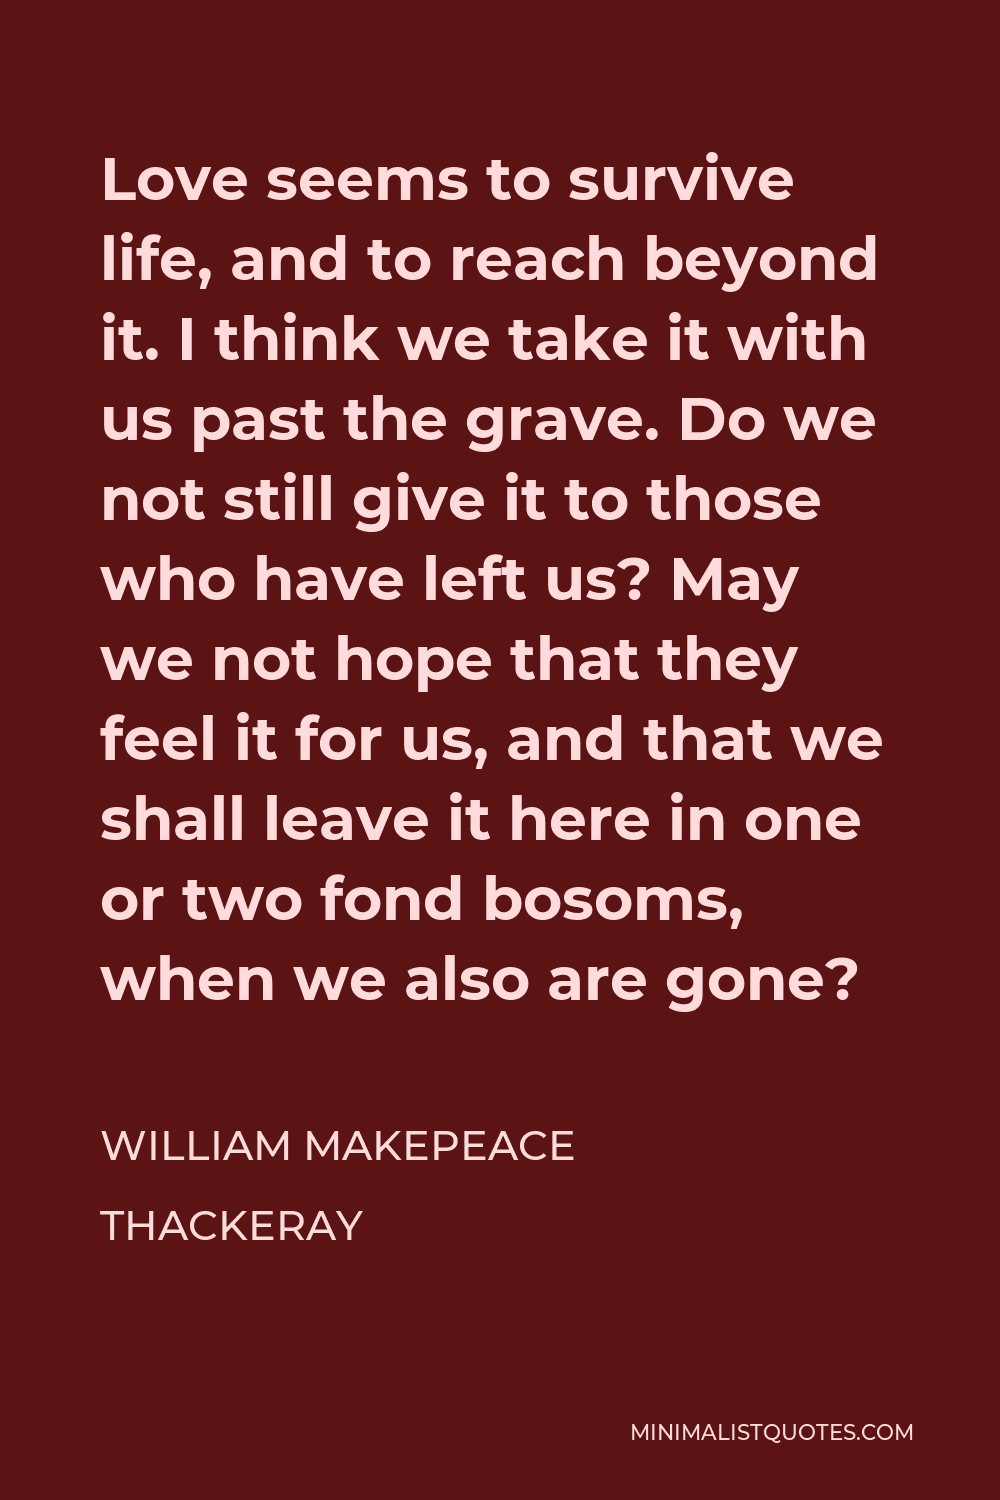 William Makepeace Thackeray Quote - Love seems to survive life, and to reach beyond it. I think we take it with us past the grave. Do we not still give it to those who have left us? May we not hope that they feel it for us, and that we shall leave it here in one or two fond bosoms, when we also are gone?